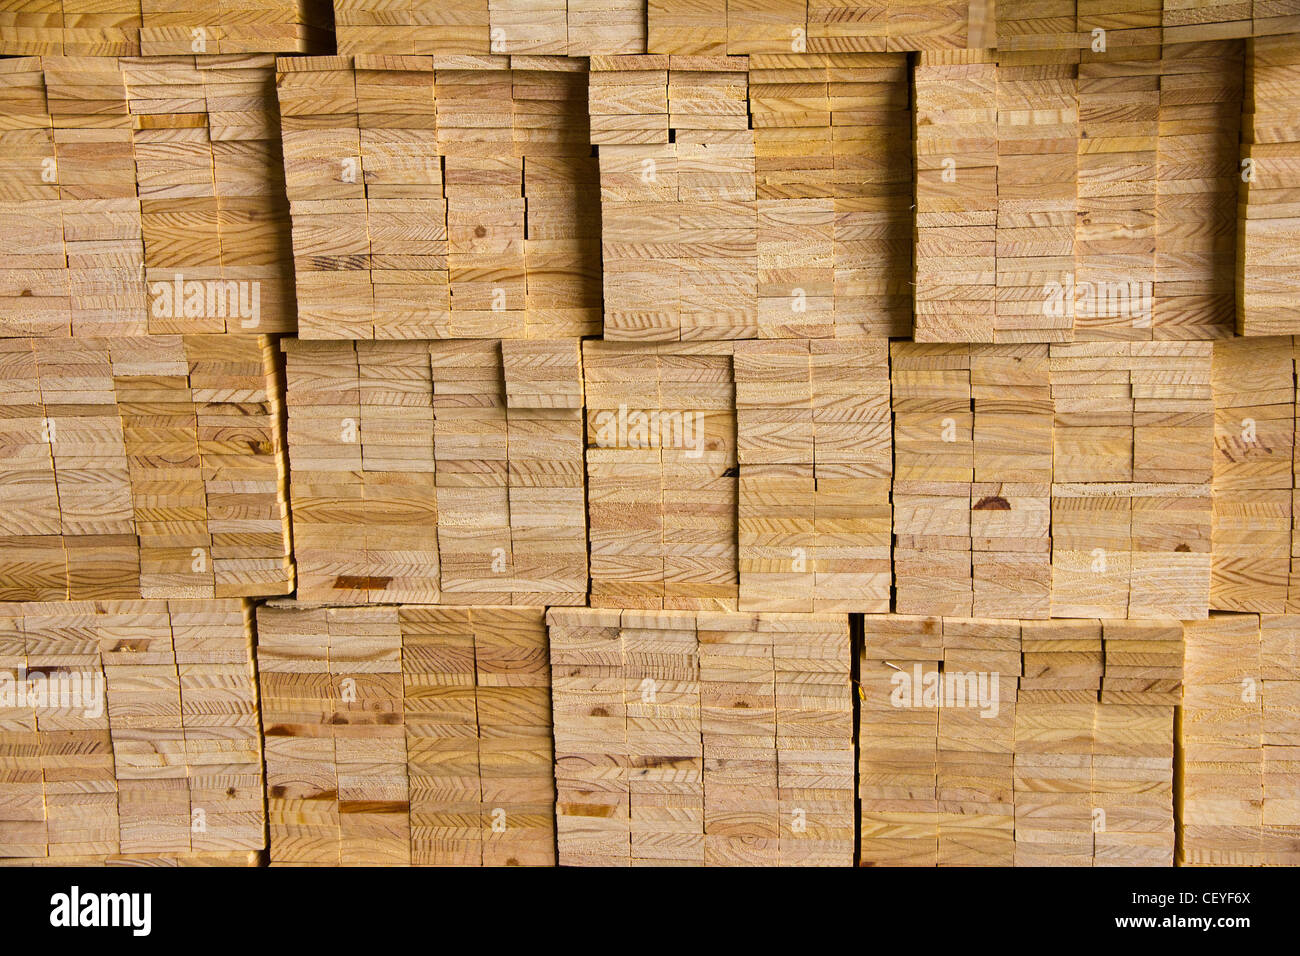 PLANKS OF WOOD - Stock Image